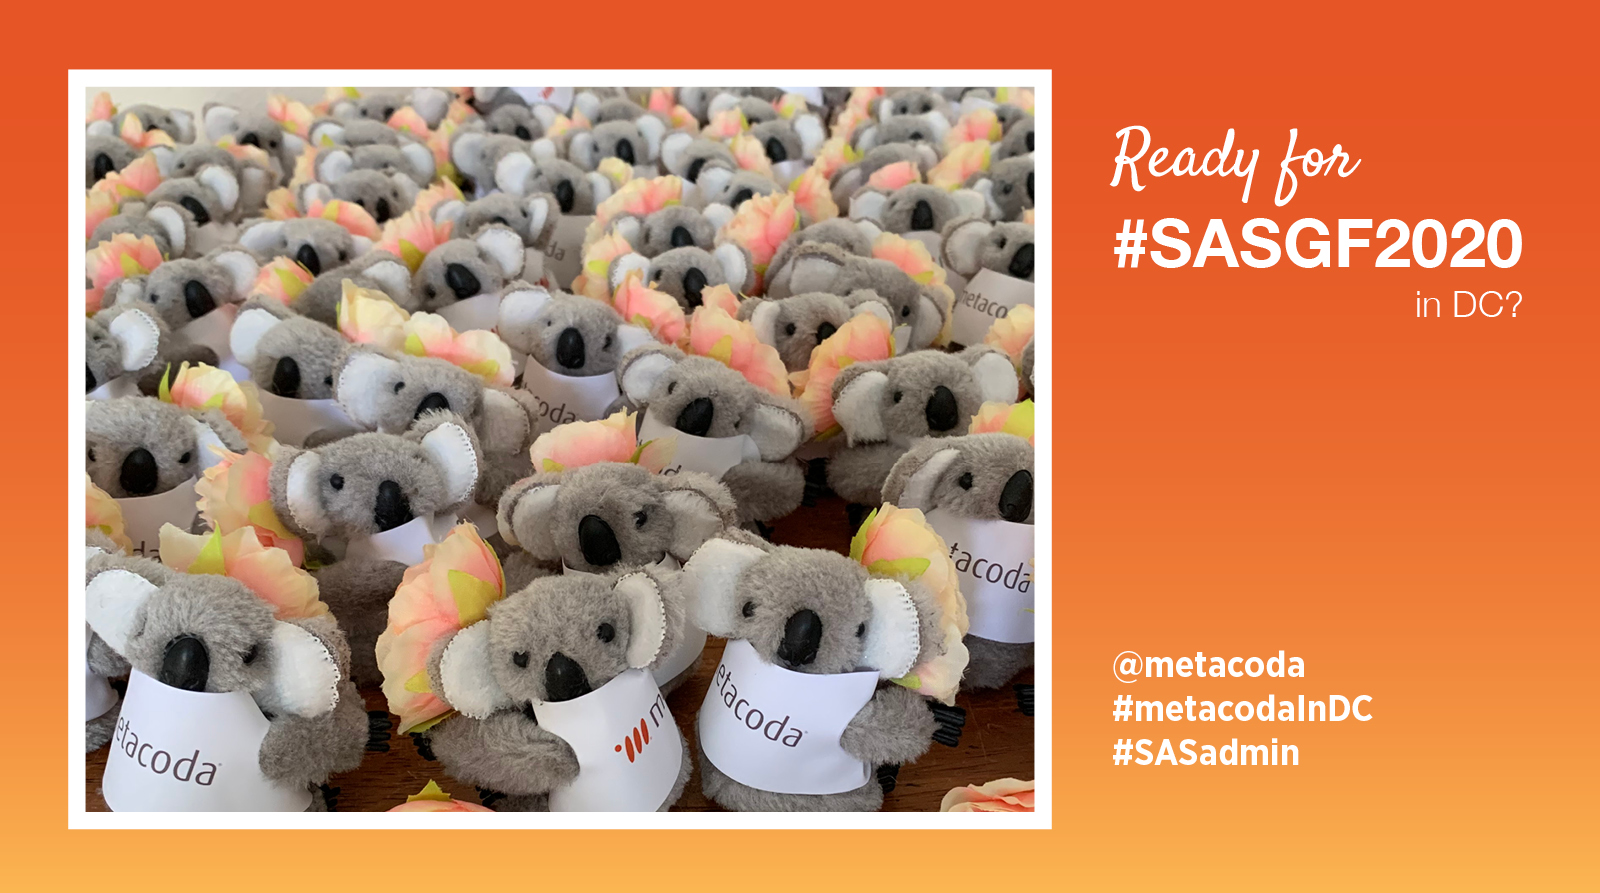 Metacoda koalas with cherry blossoms for SASGF 2020